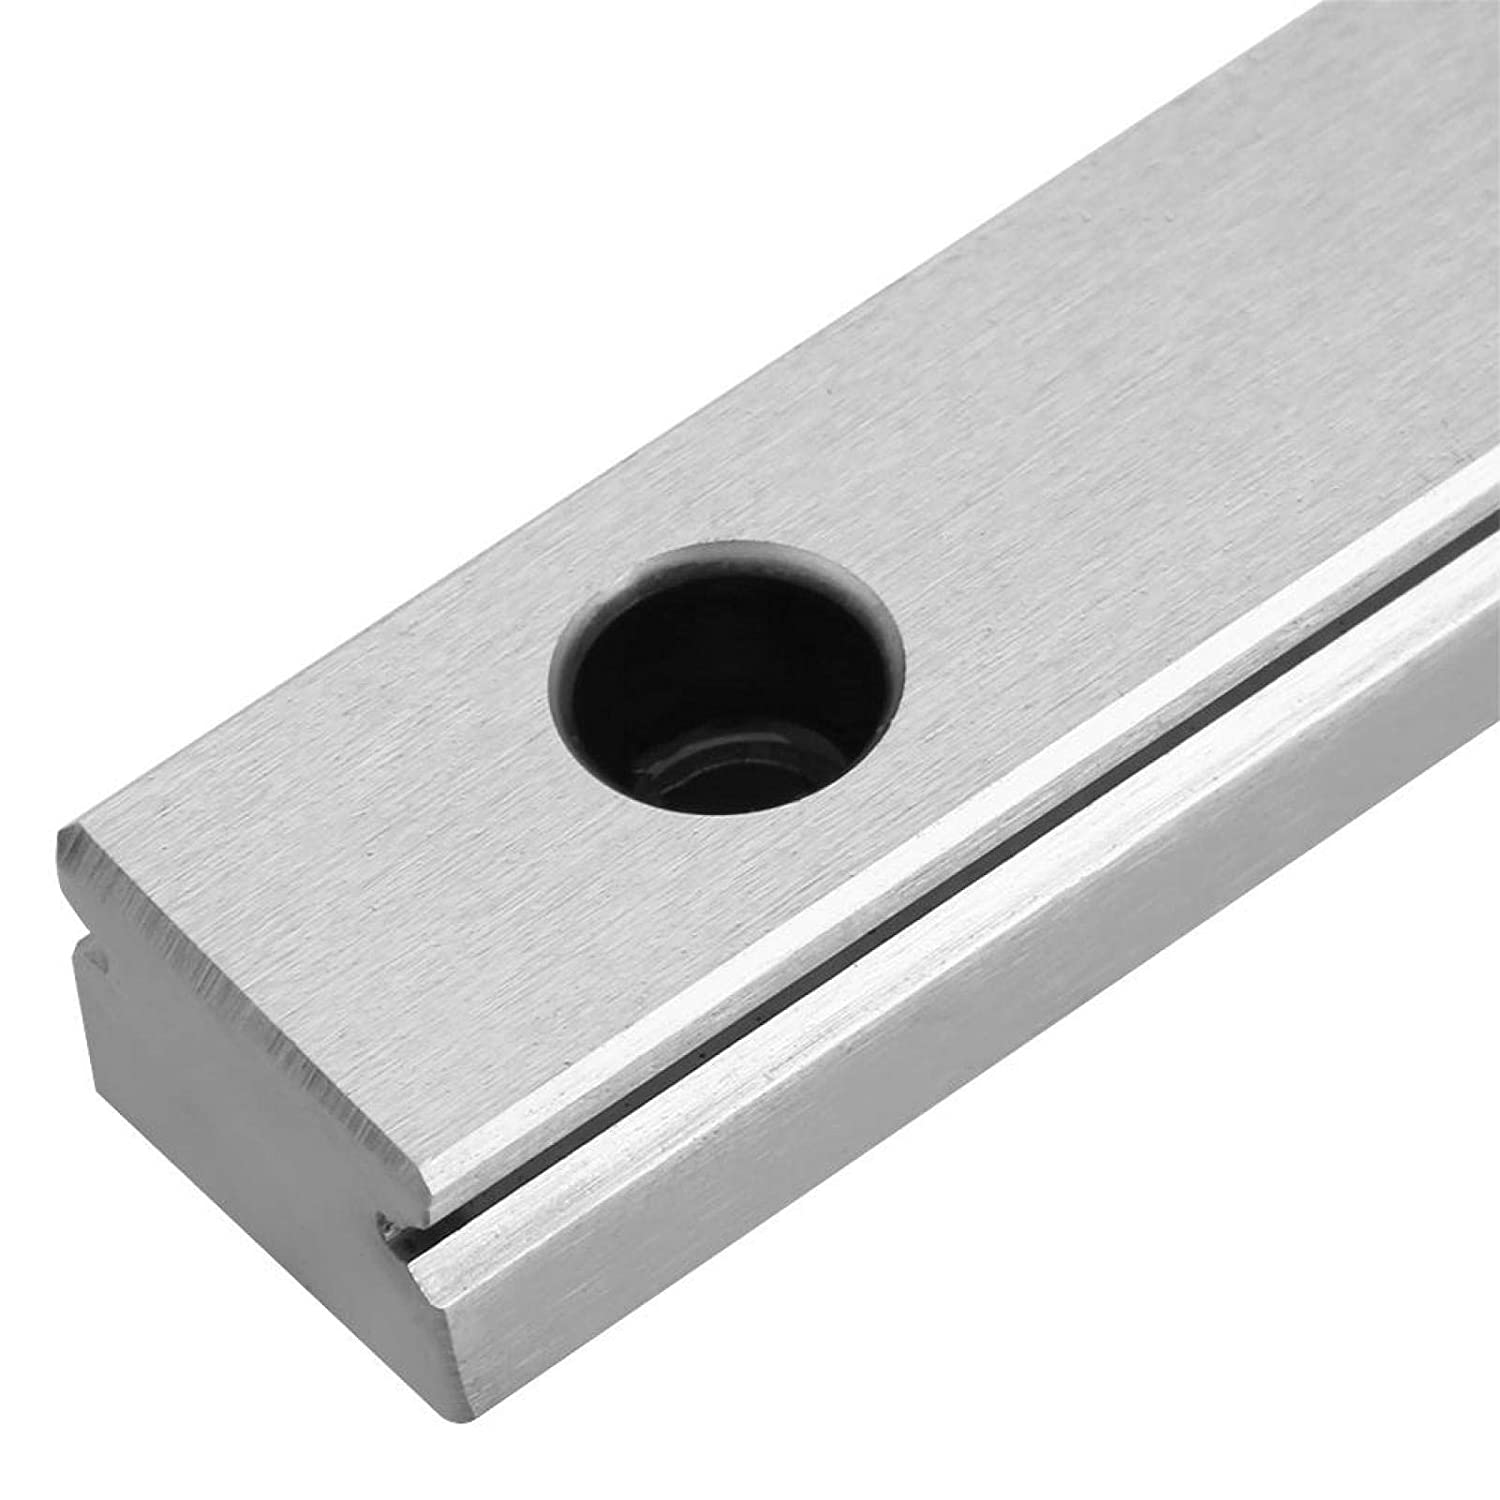 500mm Metal Light Weight Durable Miniature Linear Sliding Rail Beautiful Design 250//300//400//500//550mm Stable Guide Slide Rail Block for Automatic Equipment